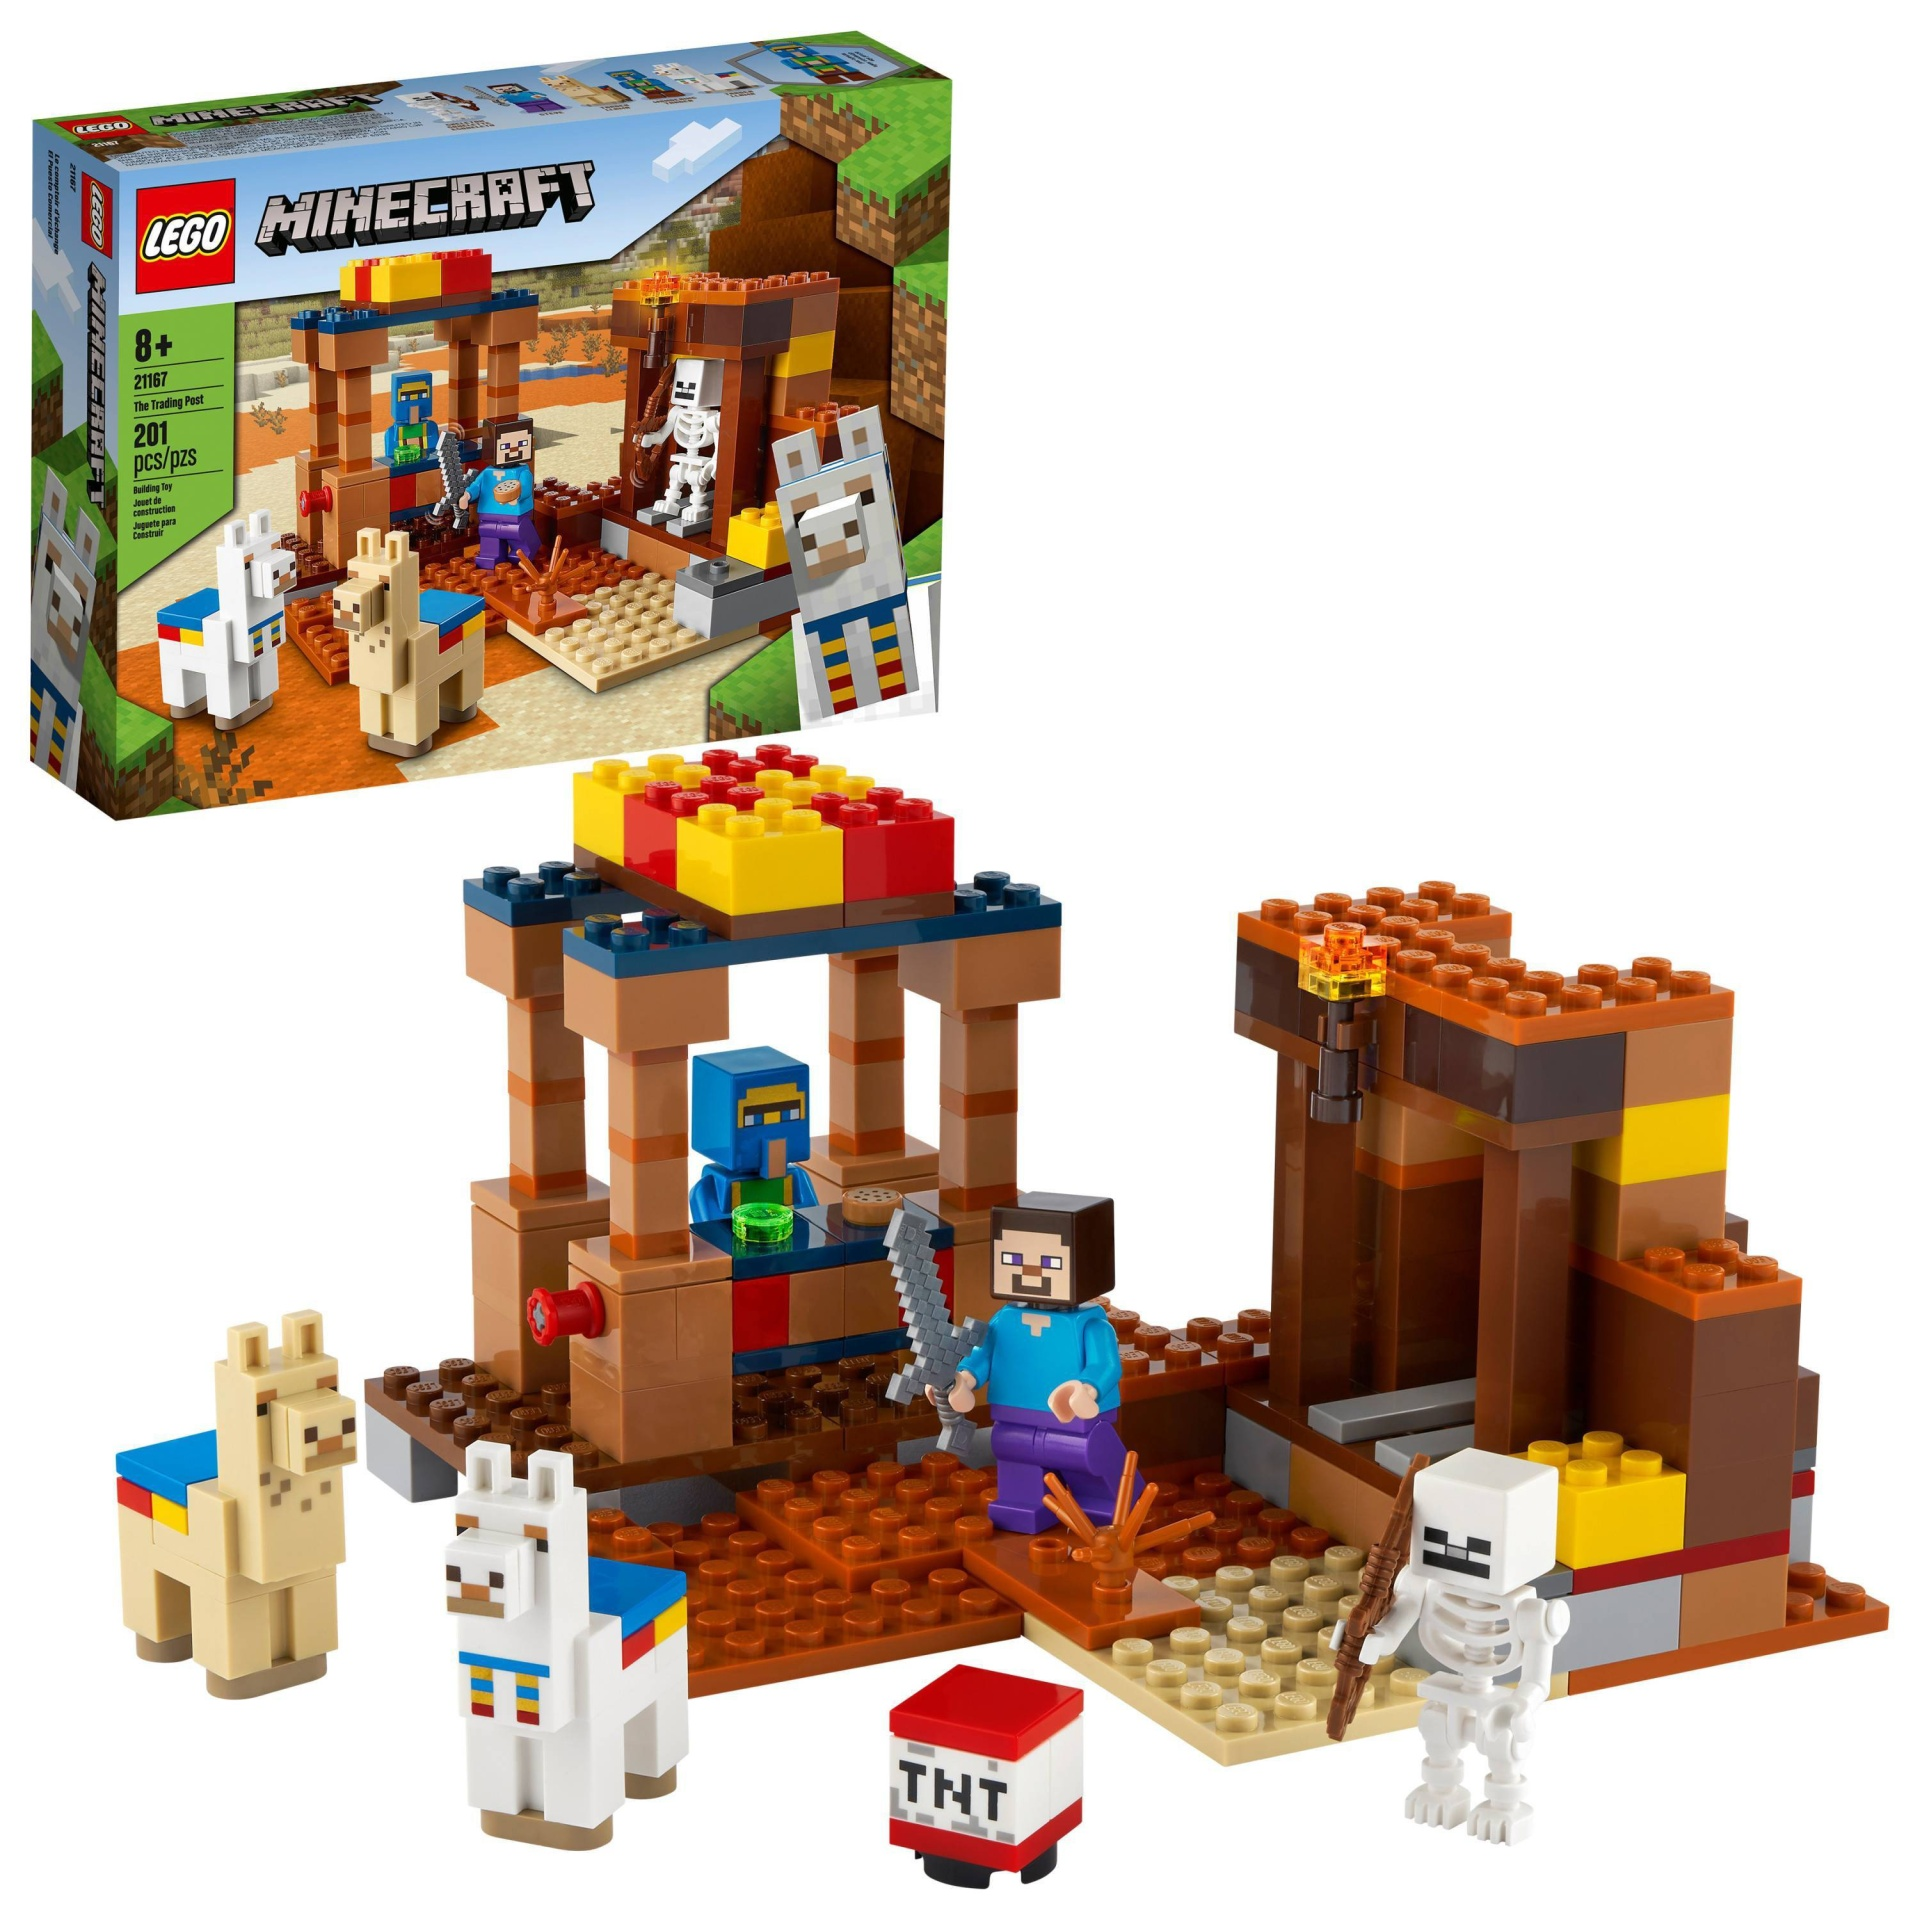 slide 1 of 7, LEGO Minecraft The Trading Post; Includes Minecraft's Steve and Skeleton Toys 21167,